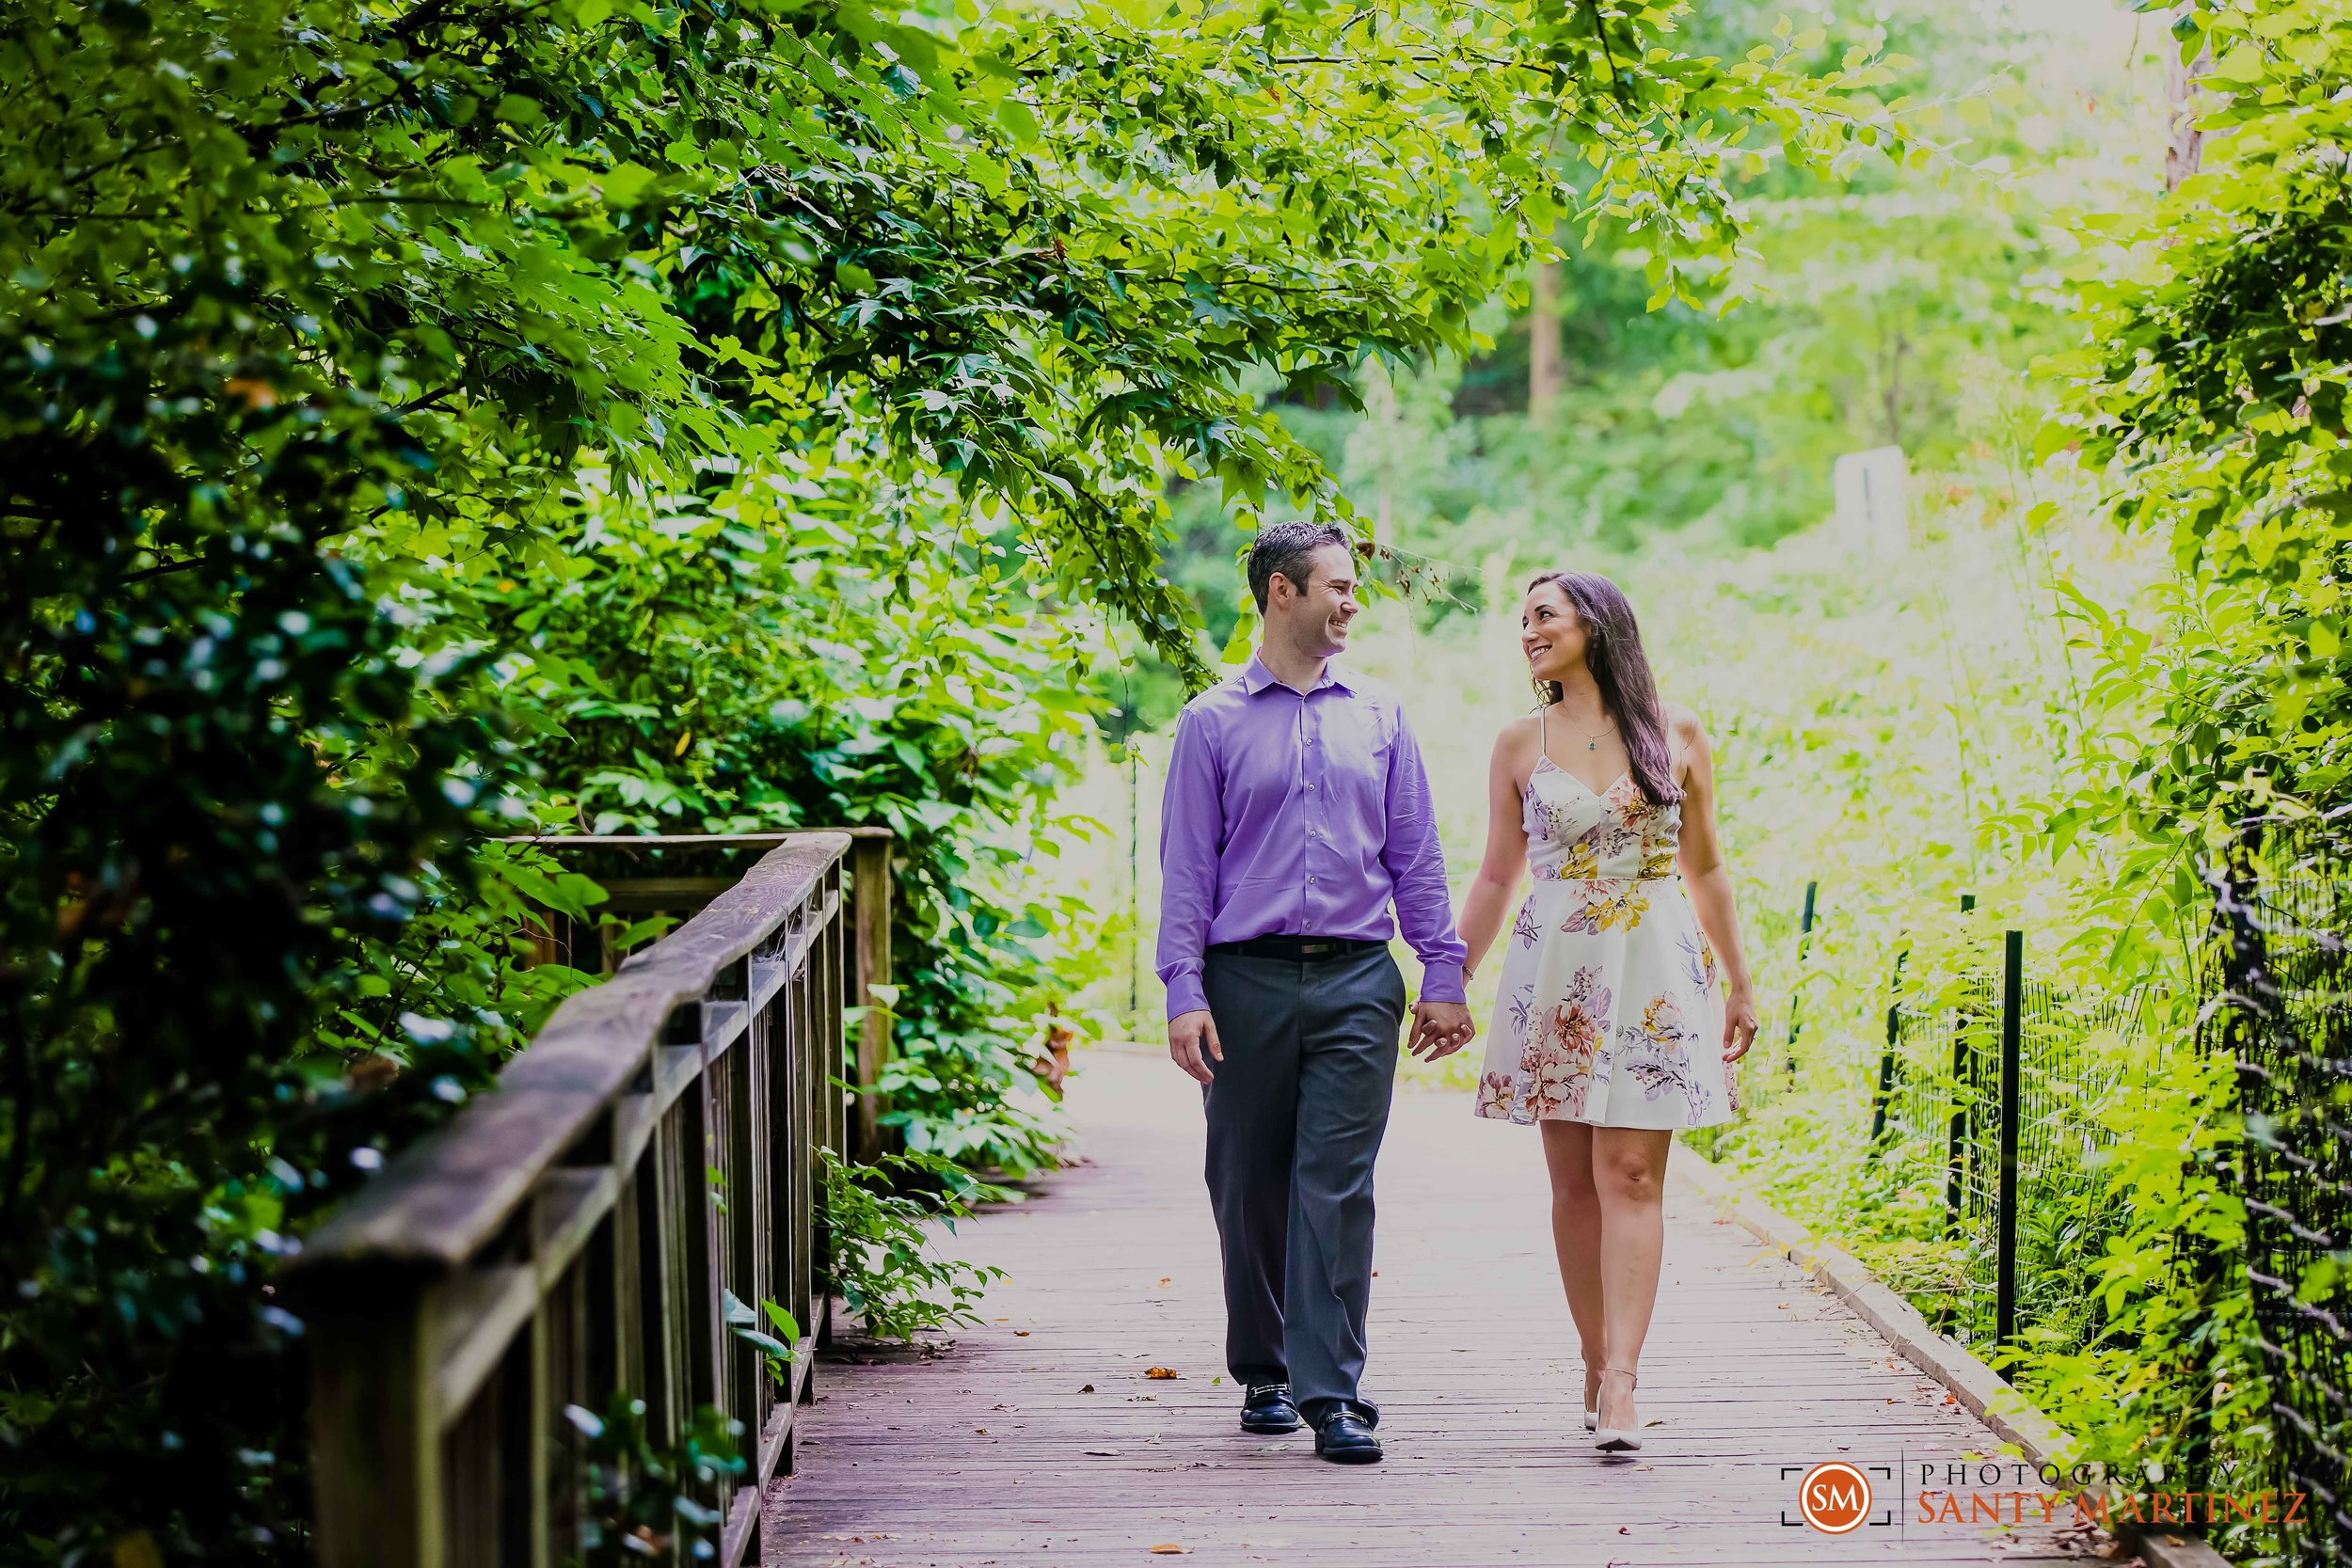 Engagement Session Piedmont Park - Santy Martinez Photography-4.jpg